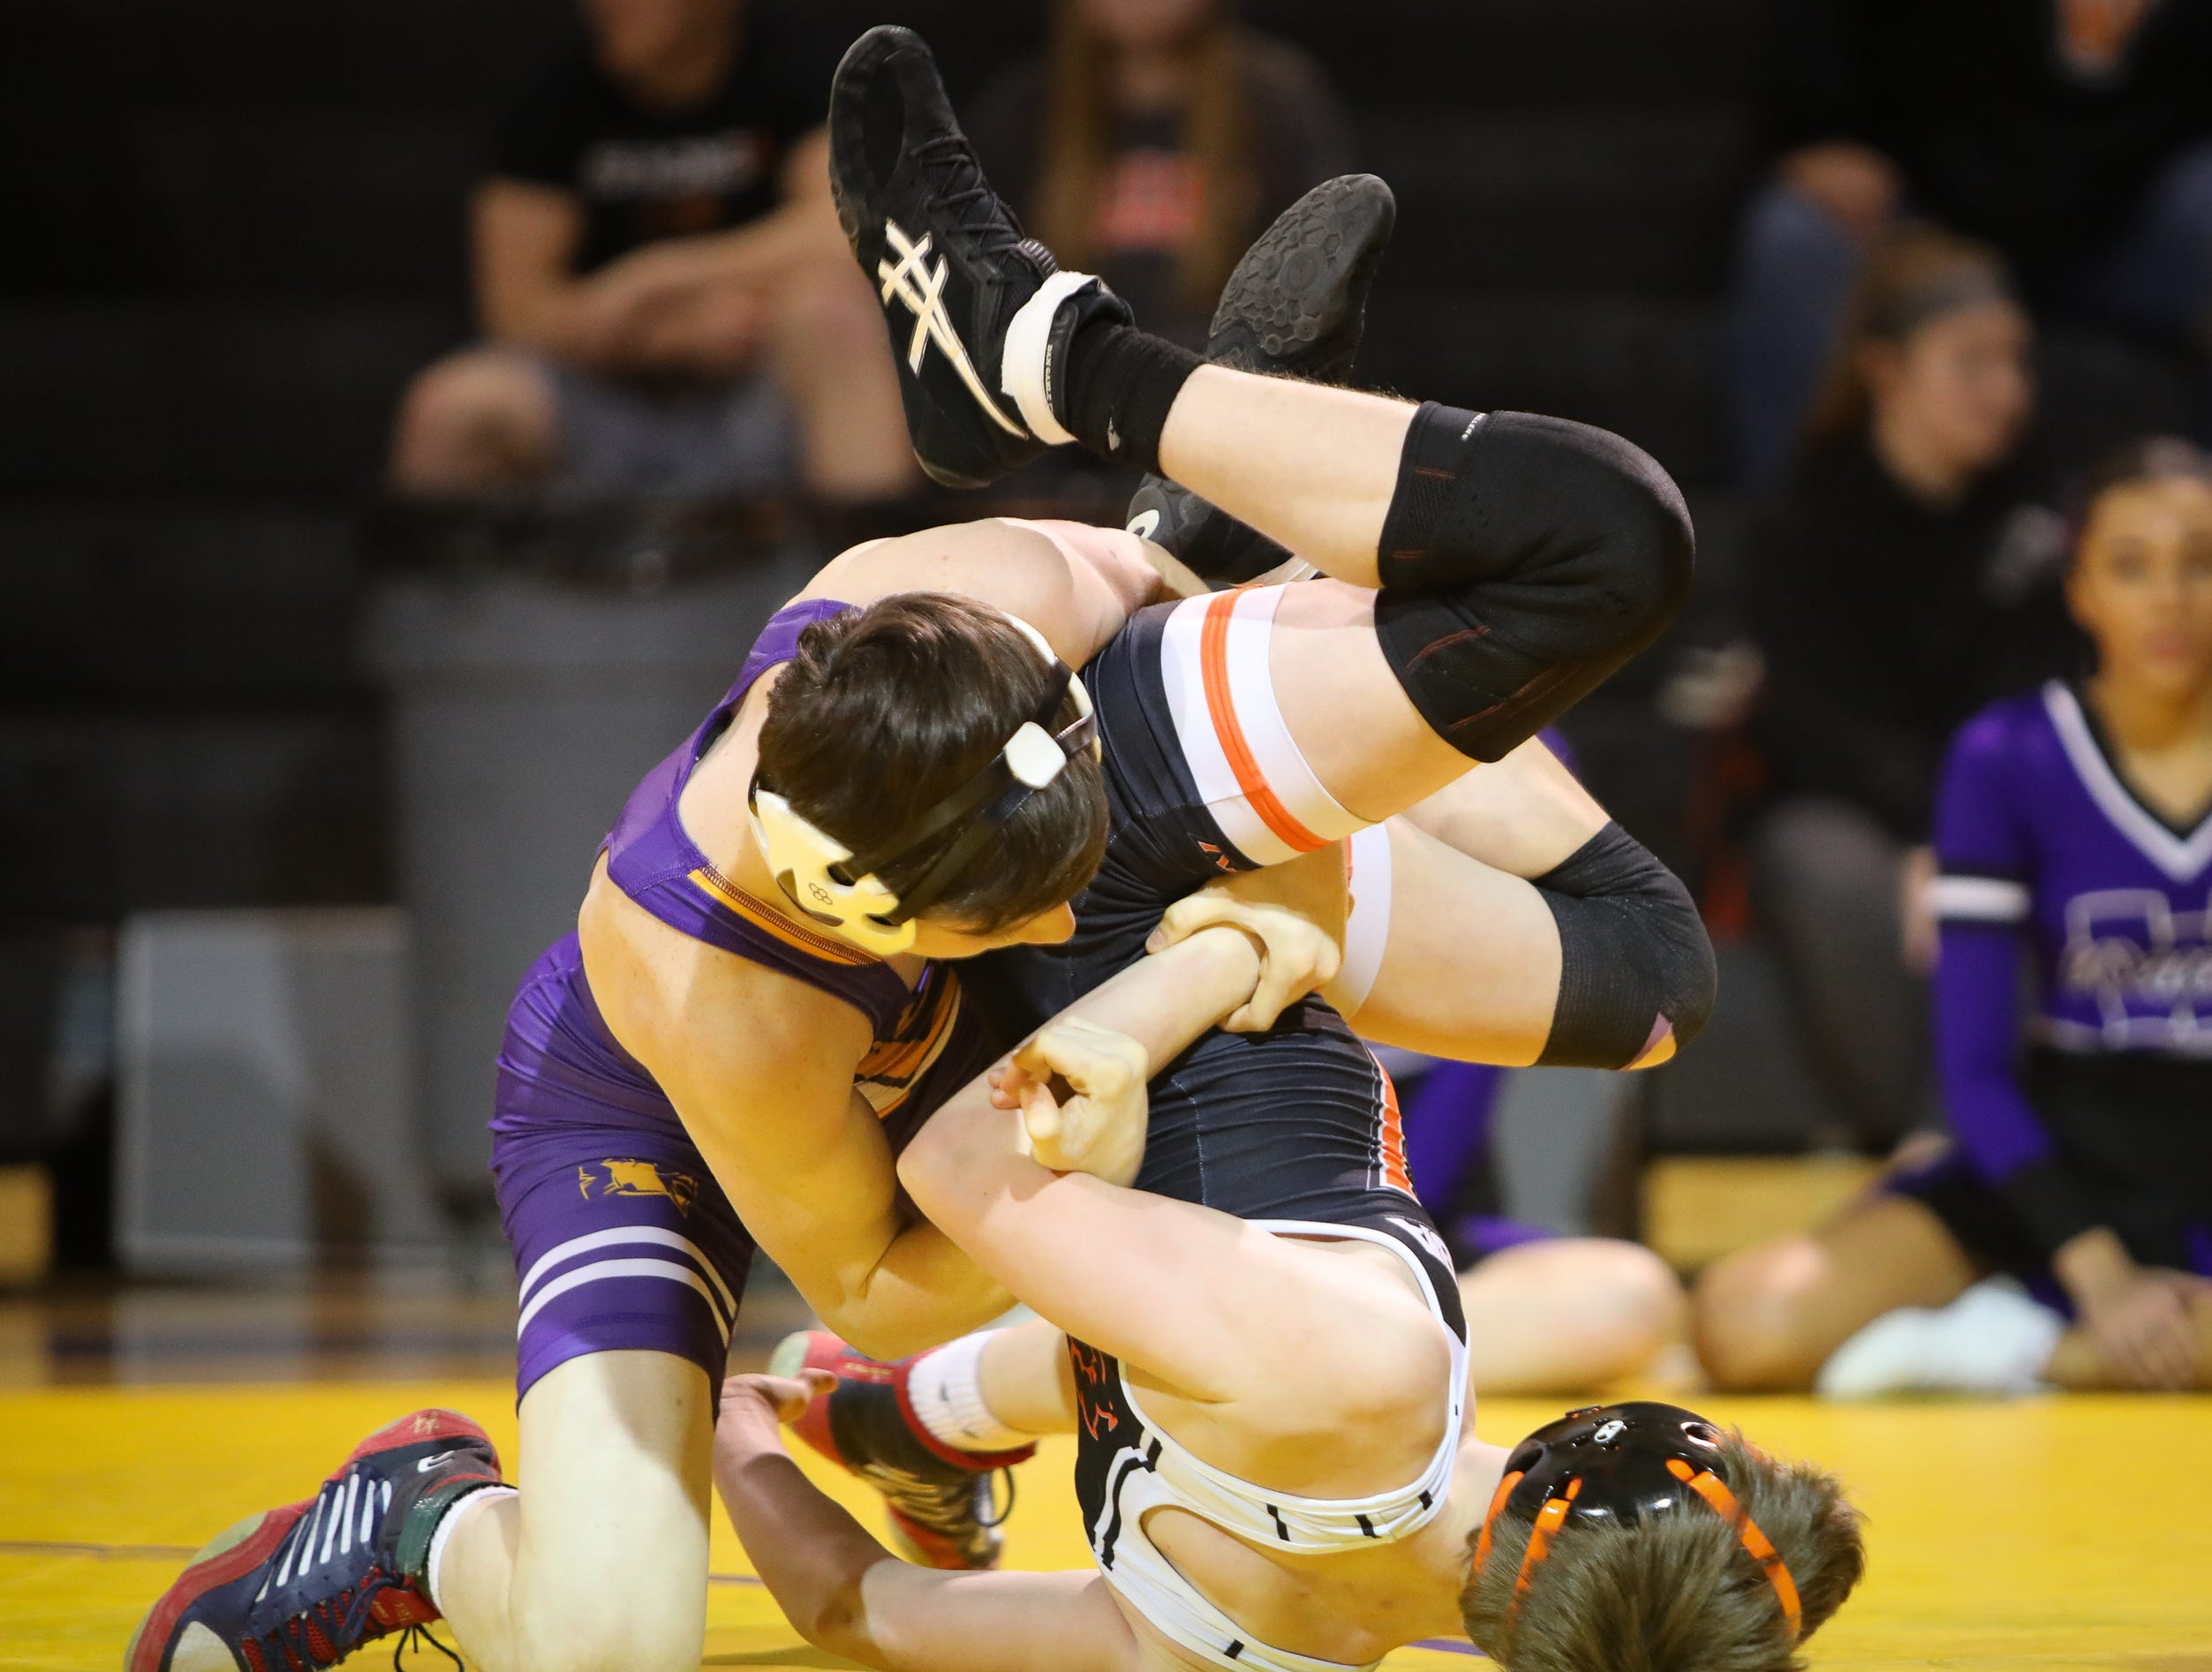 Waukee Thurman Christensen wrestles with Valley sophomore Dylan Fallacaro in the 113-pound weight class during a high school wrestling meet between the Valley Tigers and the Waukee Warriors at Waukee High School on Dec. 20, 2018 in Waukee, Iowa.